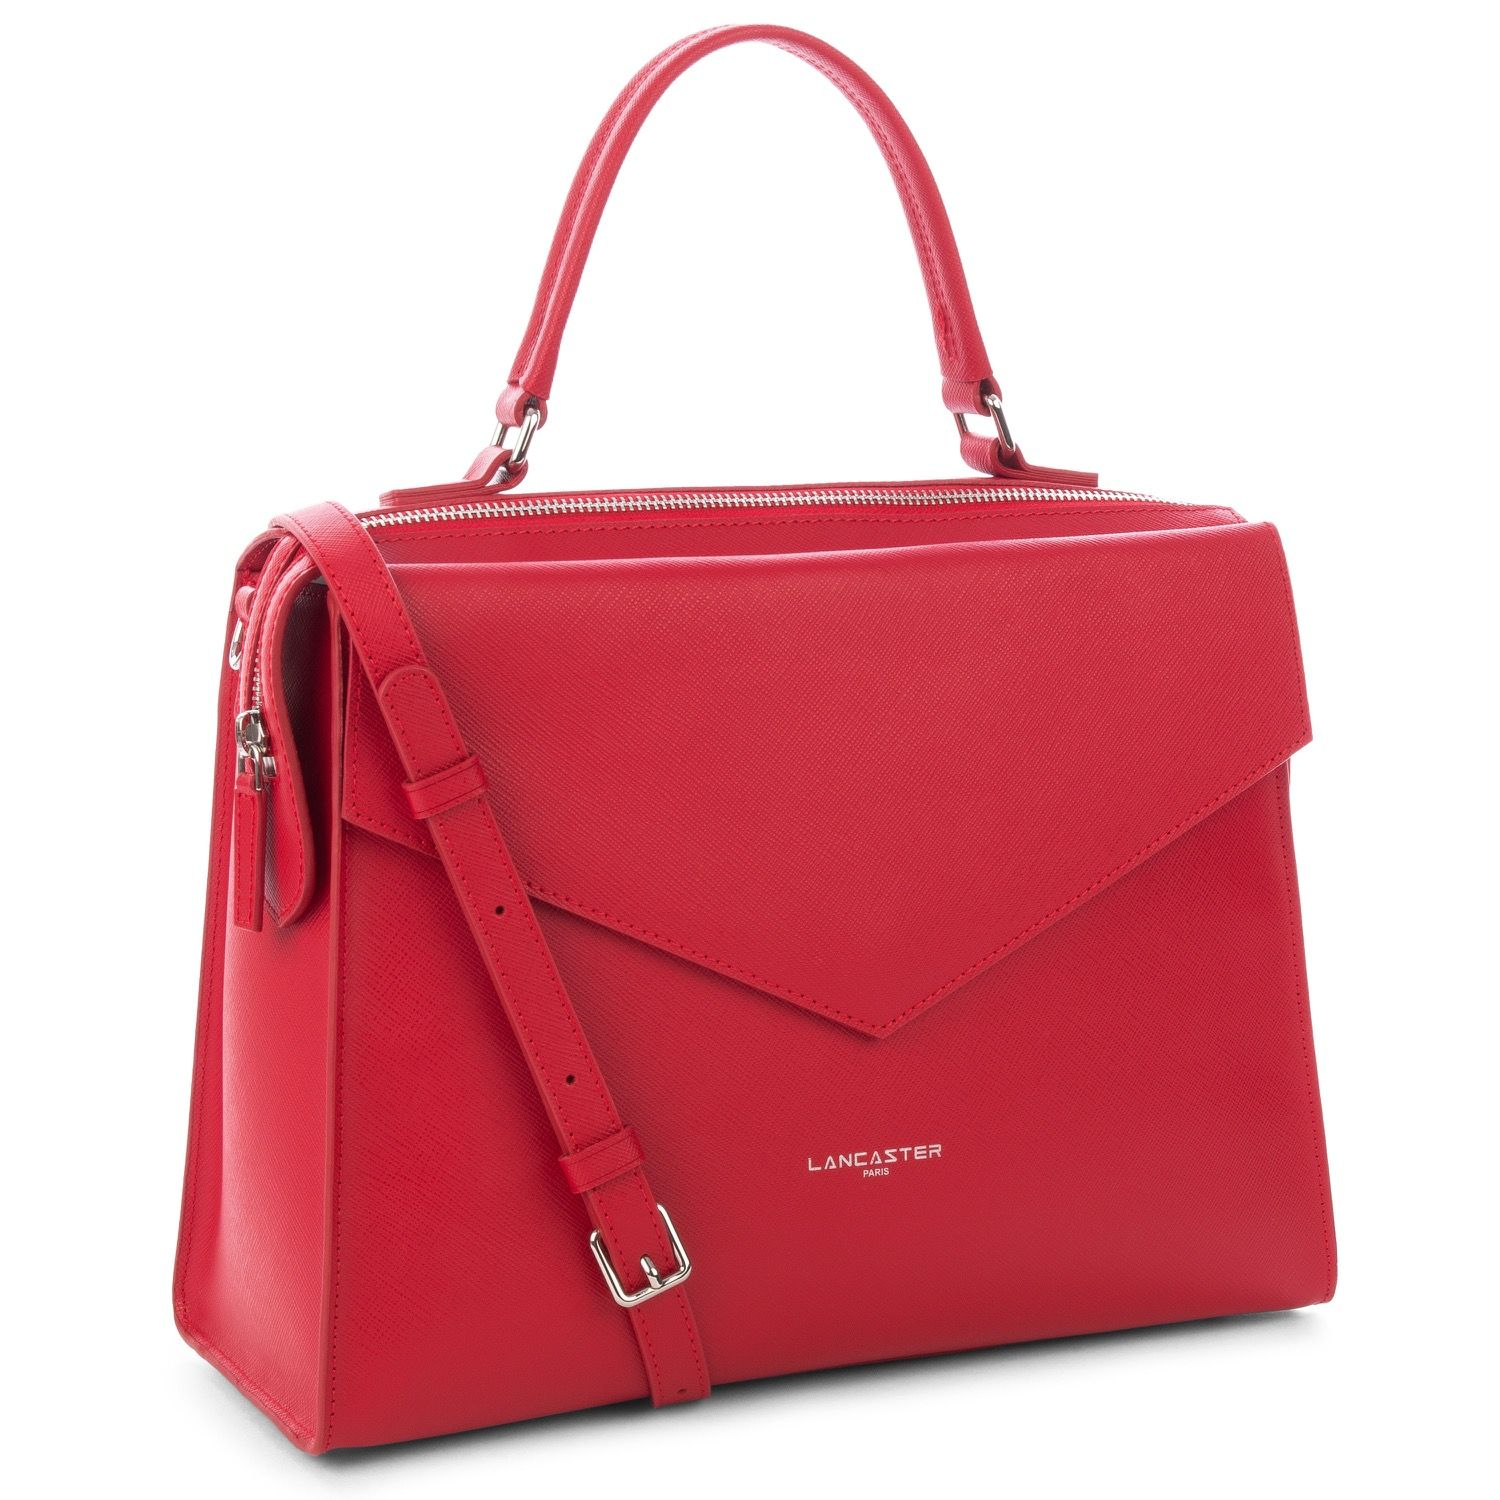 Red large satchel for women, Adèle collection, Lancaster